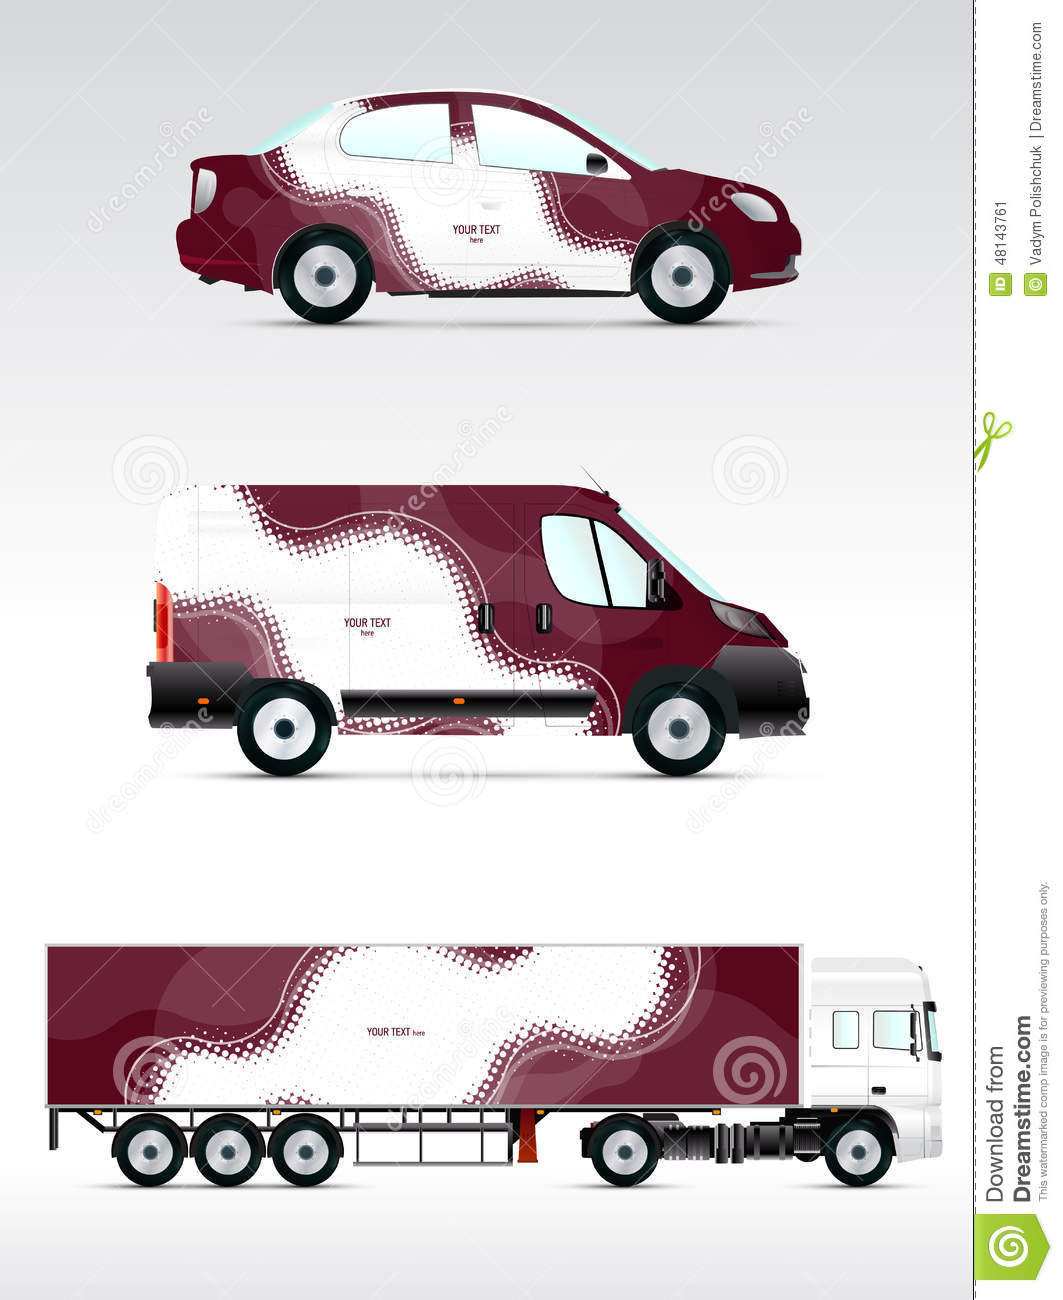 Template Vehicle For Advertising Branding Or Corporate